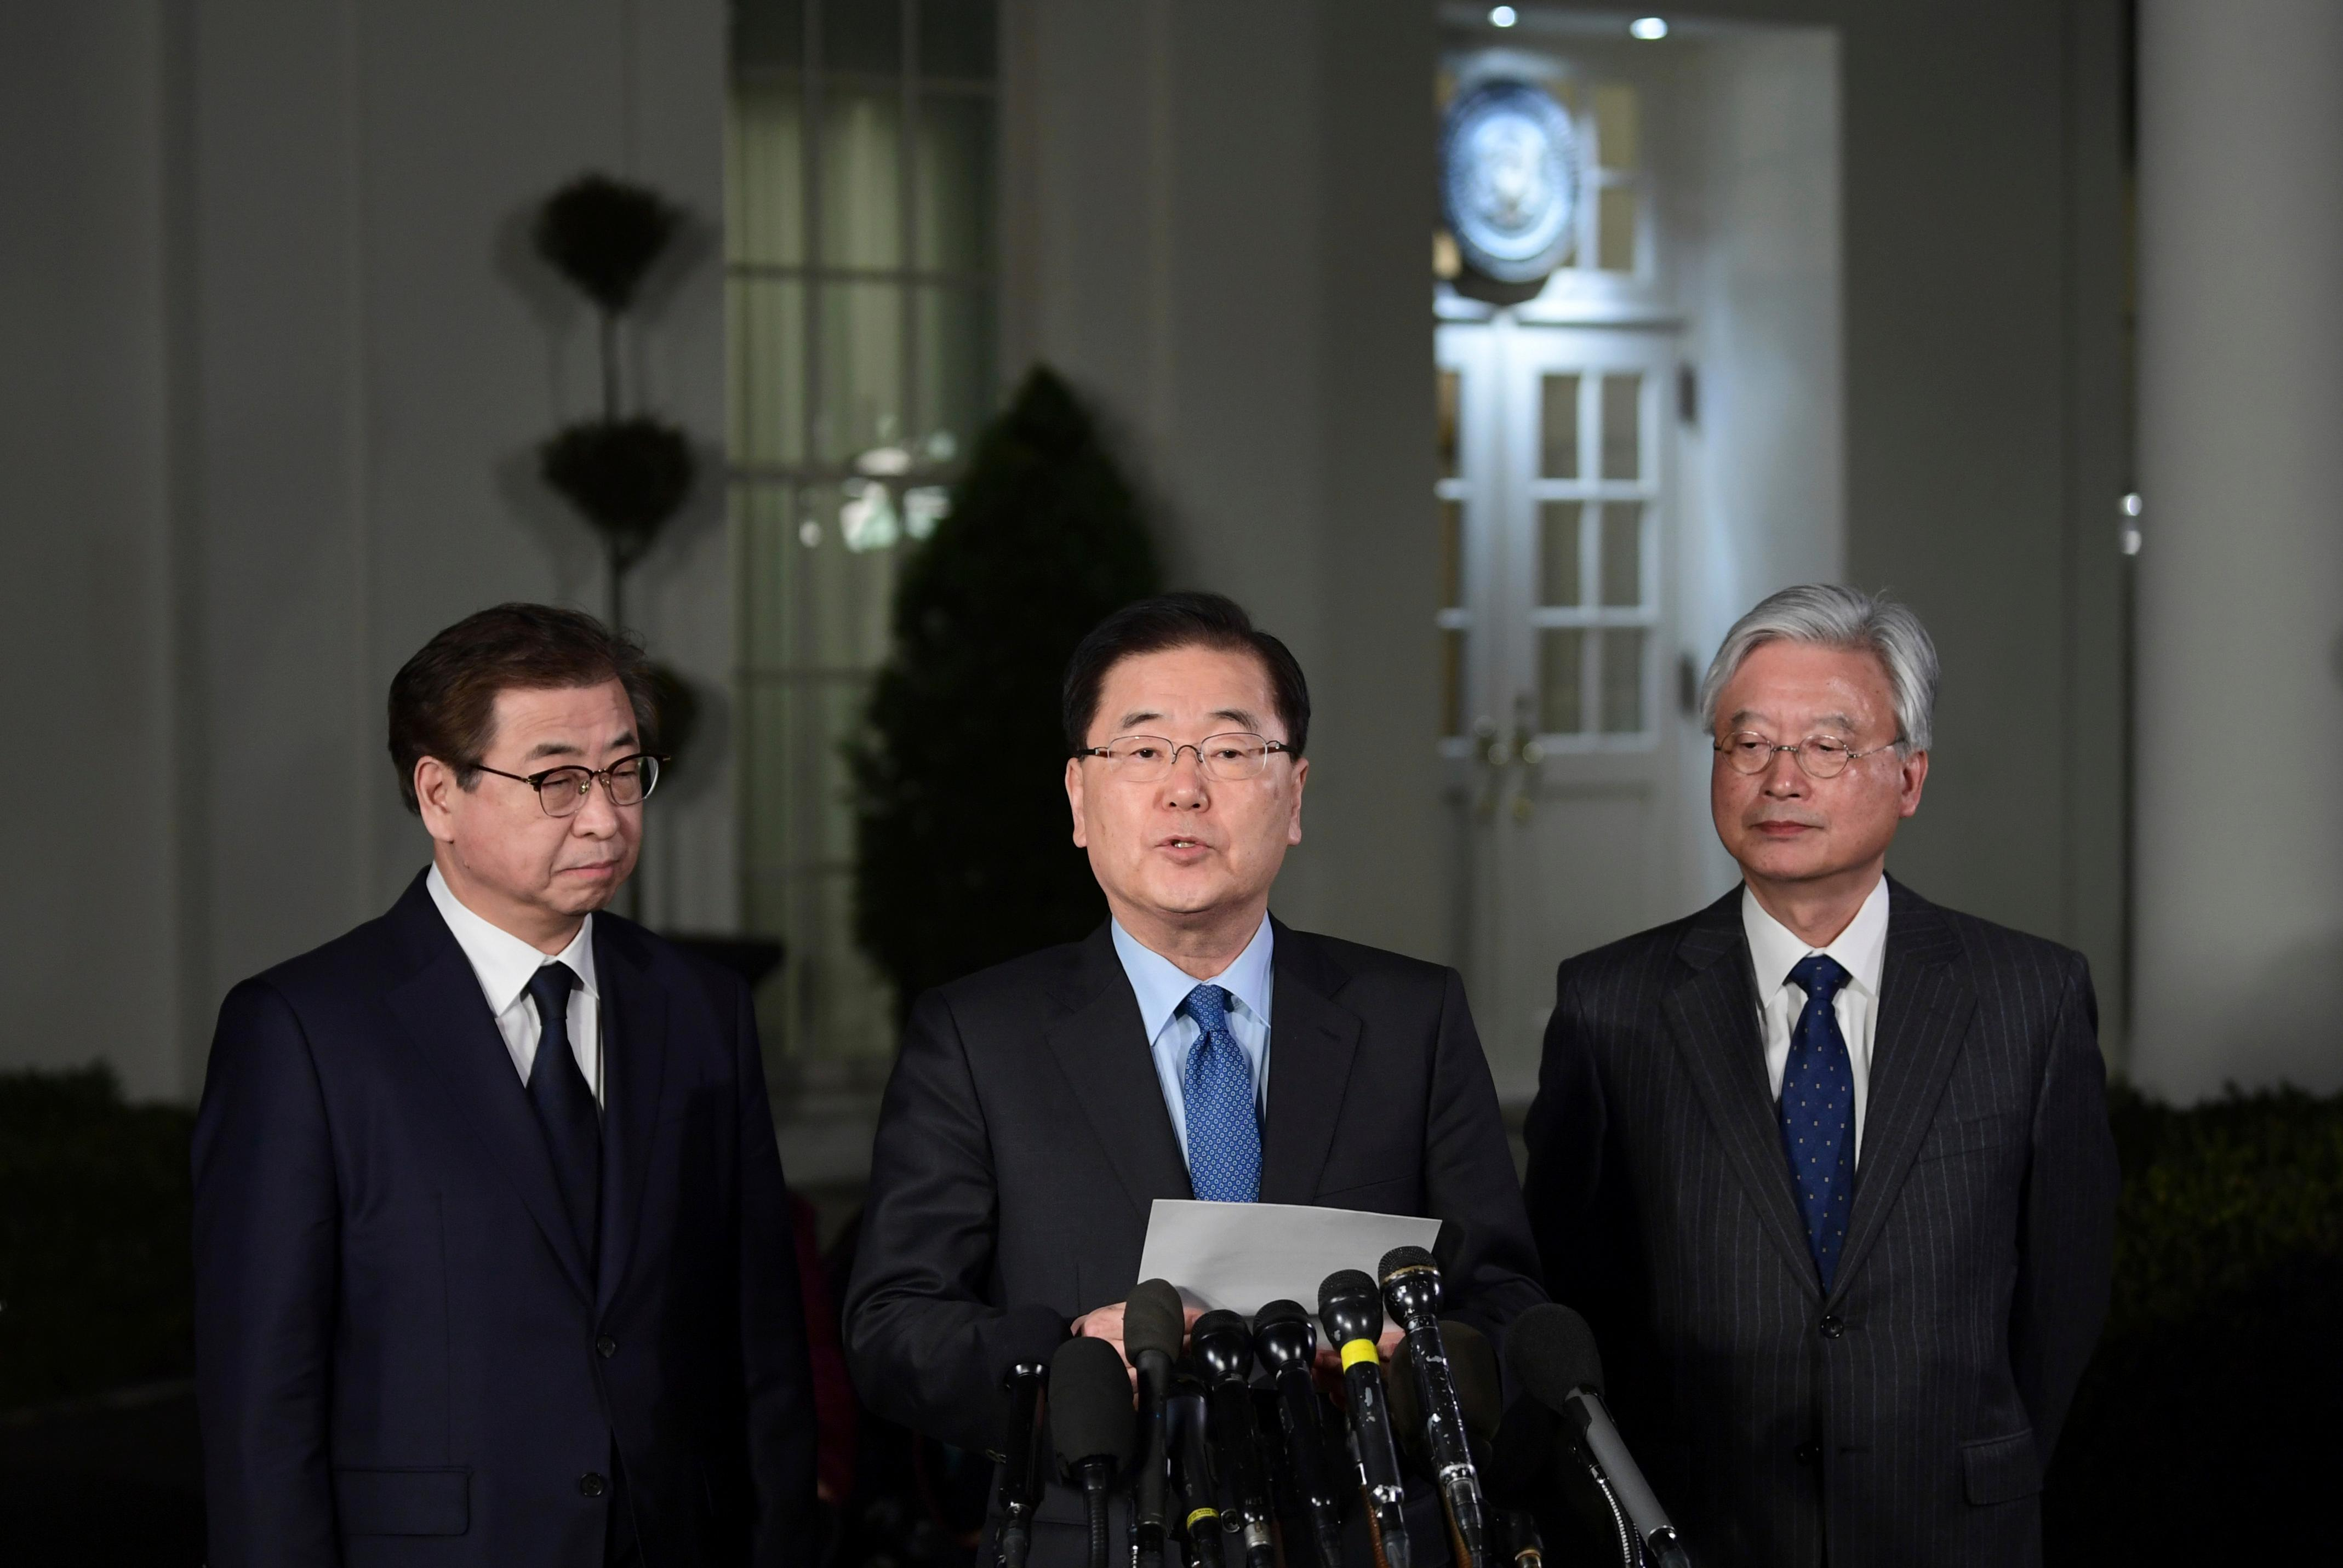 South Korean national security director Chung Eui-yong, center, speaks to reporters at the White House in Washington, Thursday, March 8, 2018. Intelligence chief Suh Hoon is at left. President Donald Trump has accepted an offer of a summit from the North Korean leader and will meet with Kim Jong Un by May, a top South Korean official said Thursday, in a remarkable turnaround in relations between two historic adversaries. (AP Photo/Susan Walsh)